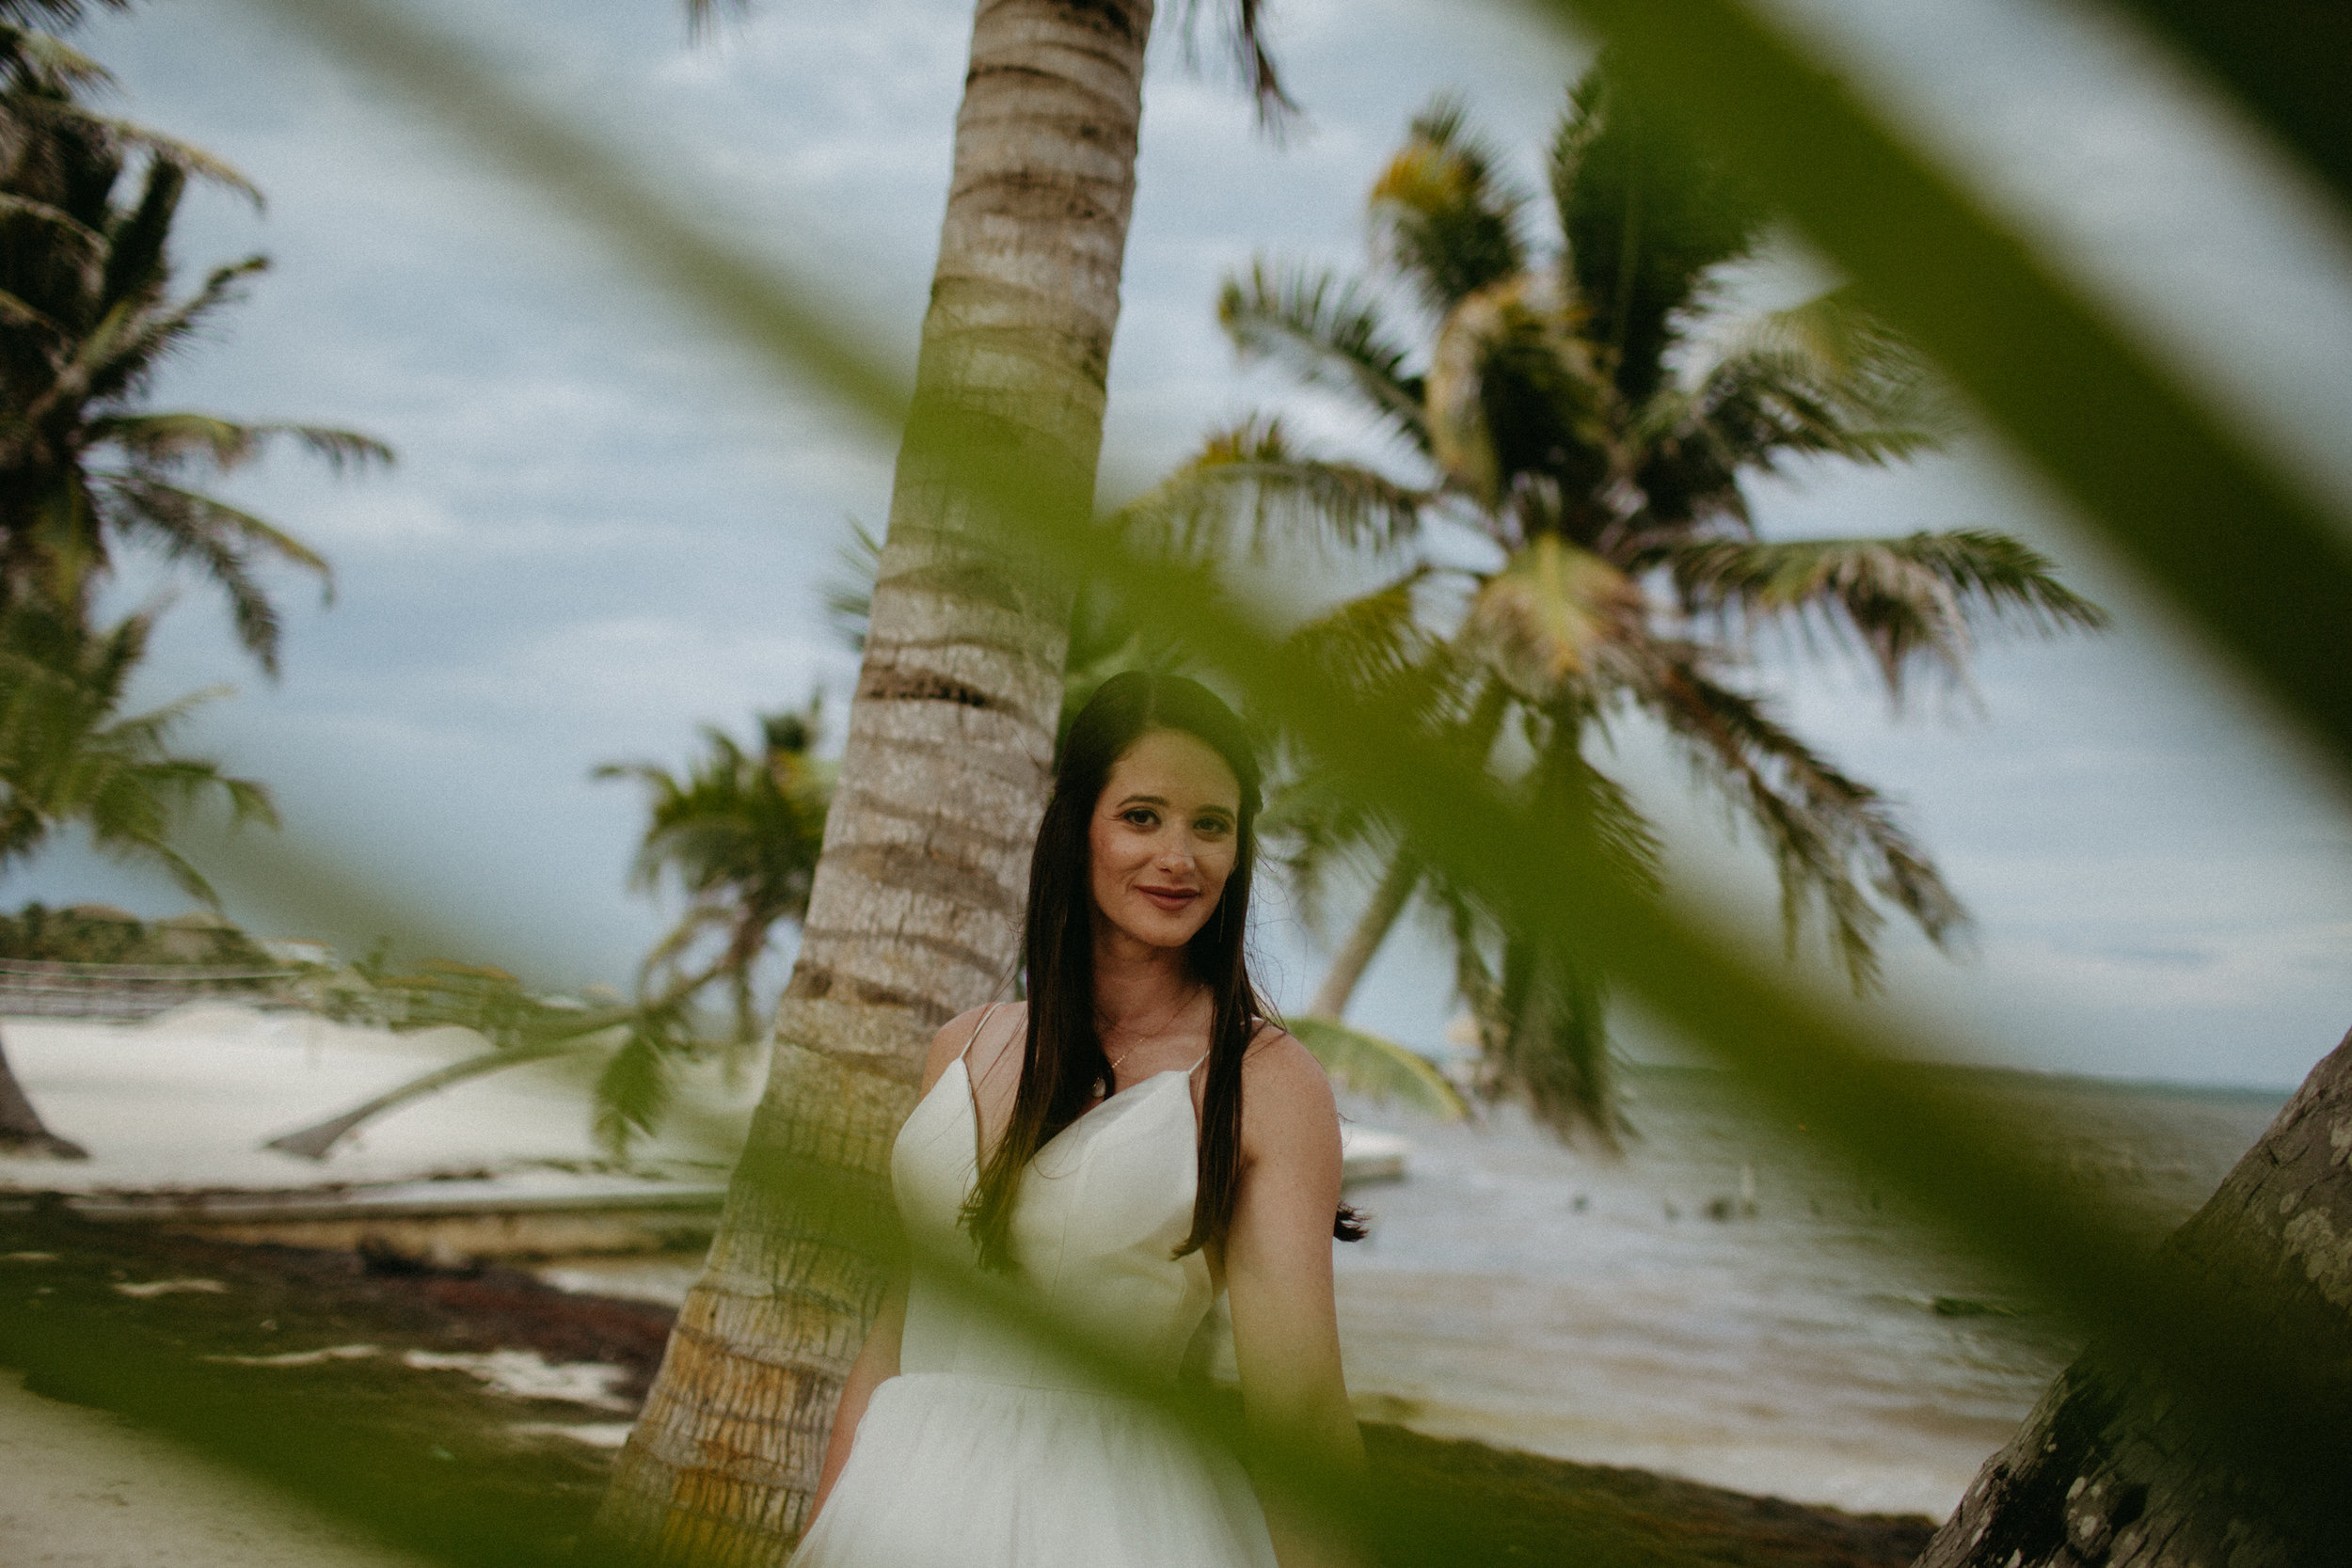 san-pescador-belize-wedding-christinemariephoto-j-k-66.jpg